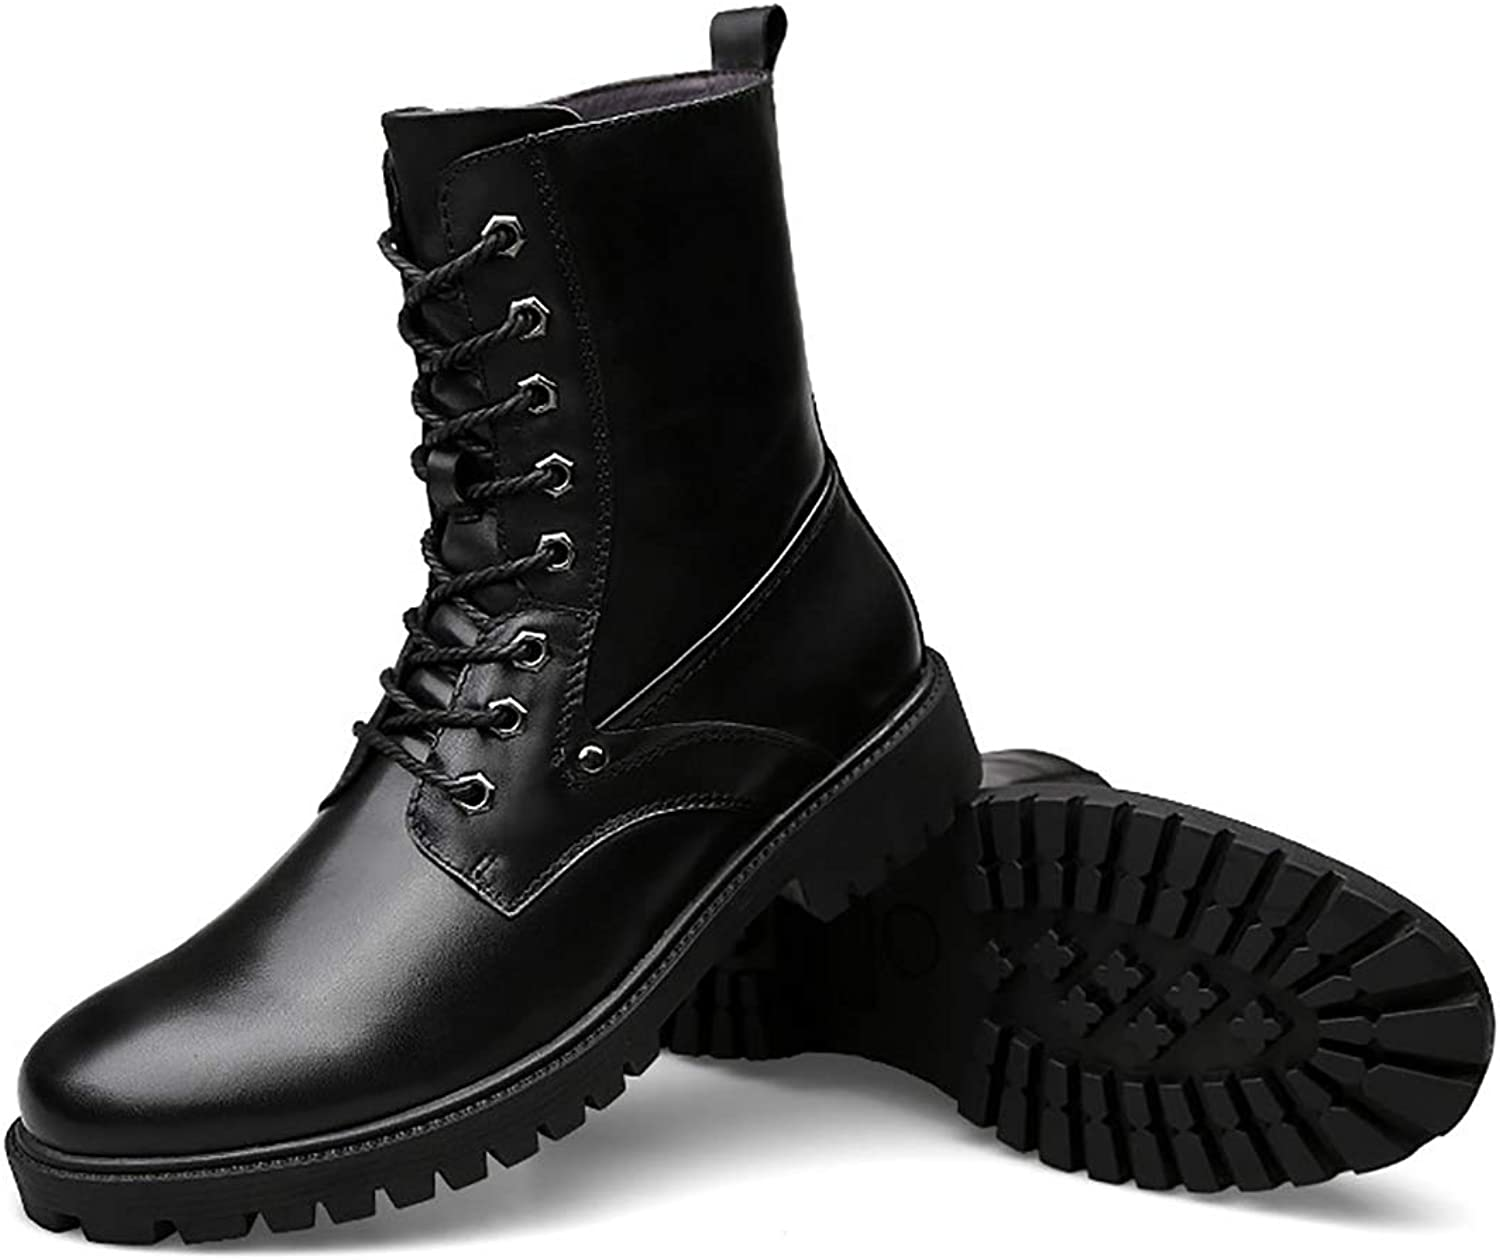 Men's Invisible Heightened Rubber Sole Military Boots Outdoor Sports Faux Leather Lace-Up Combat Boots,Single shoes & Plus Cotton,Blacksingleshoes,38